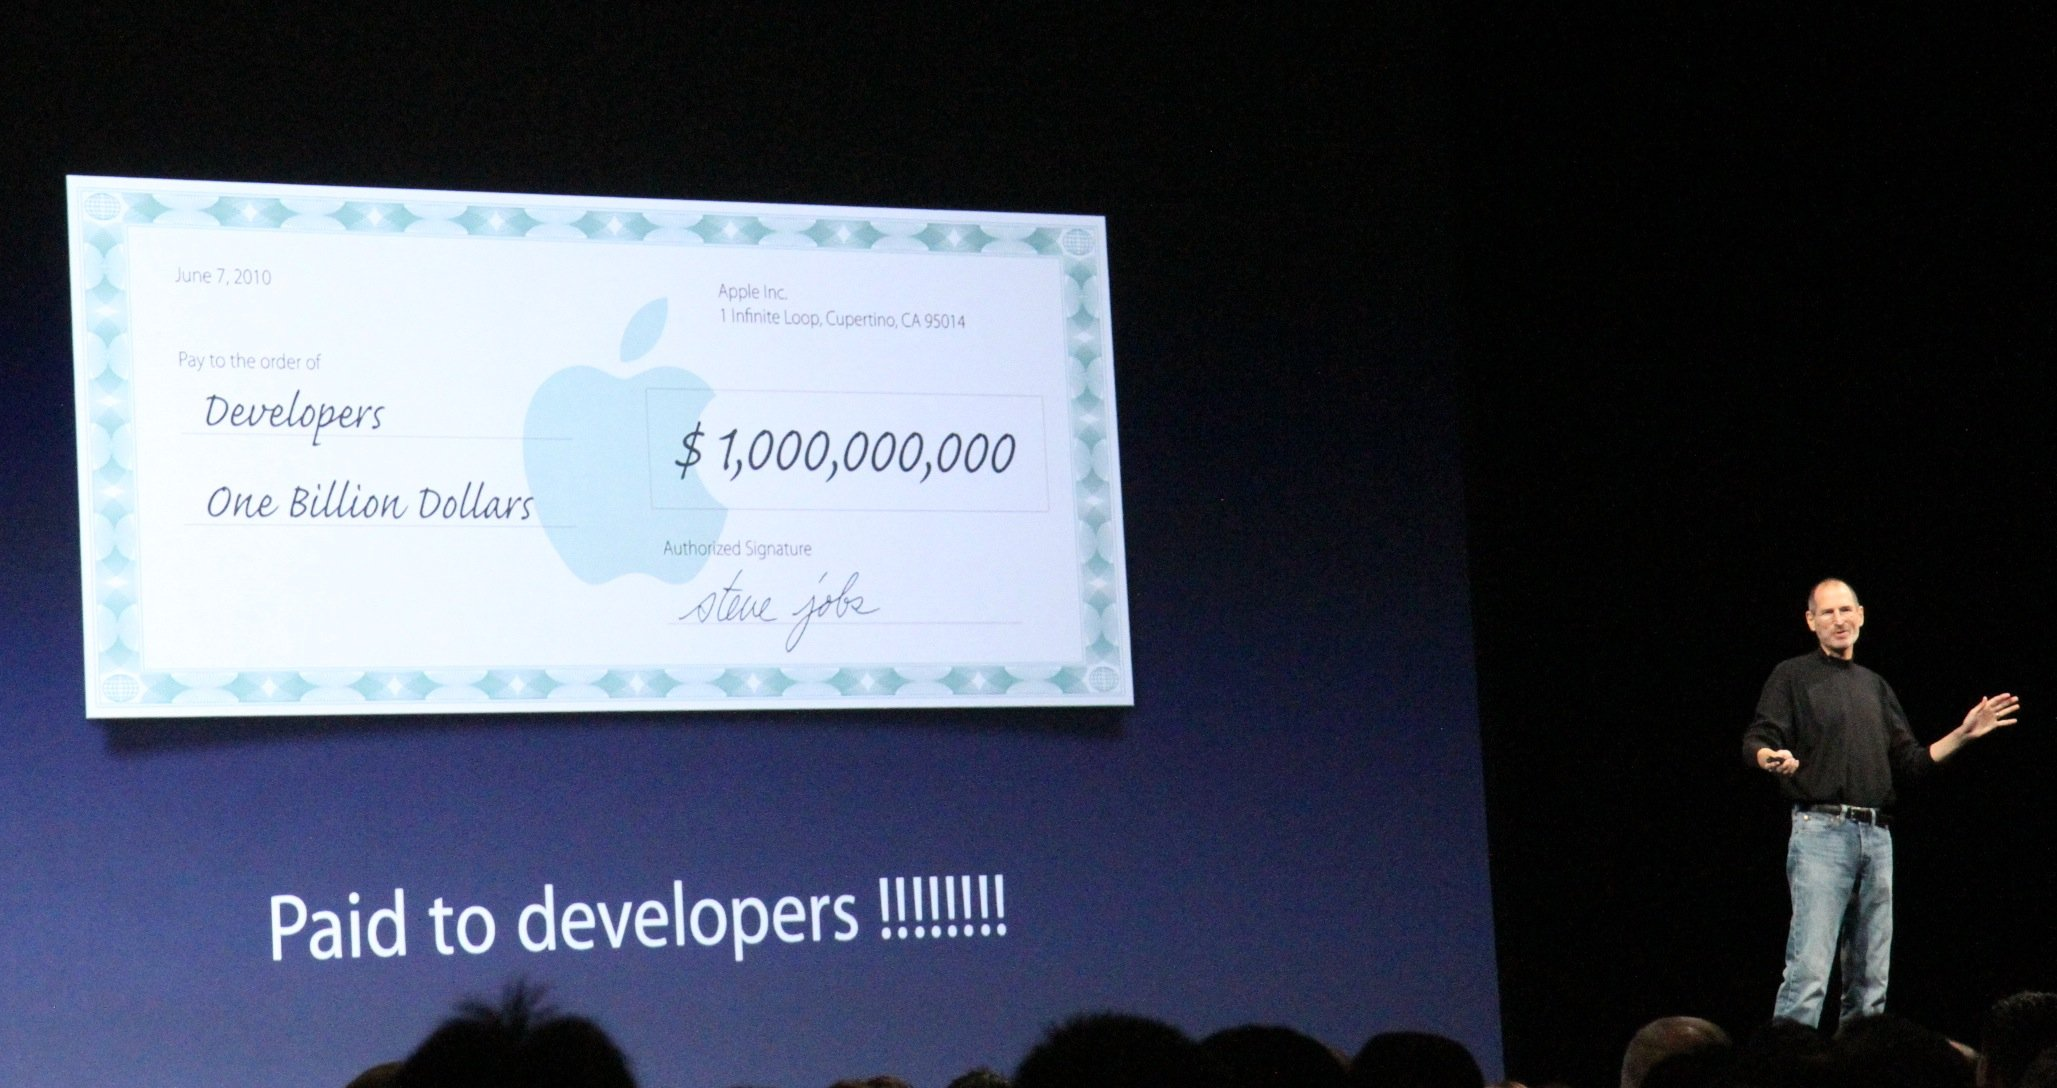 Image showing Steve Jobs at WWDC 2010 keynote talking about AppStore payouts to iPhone developers